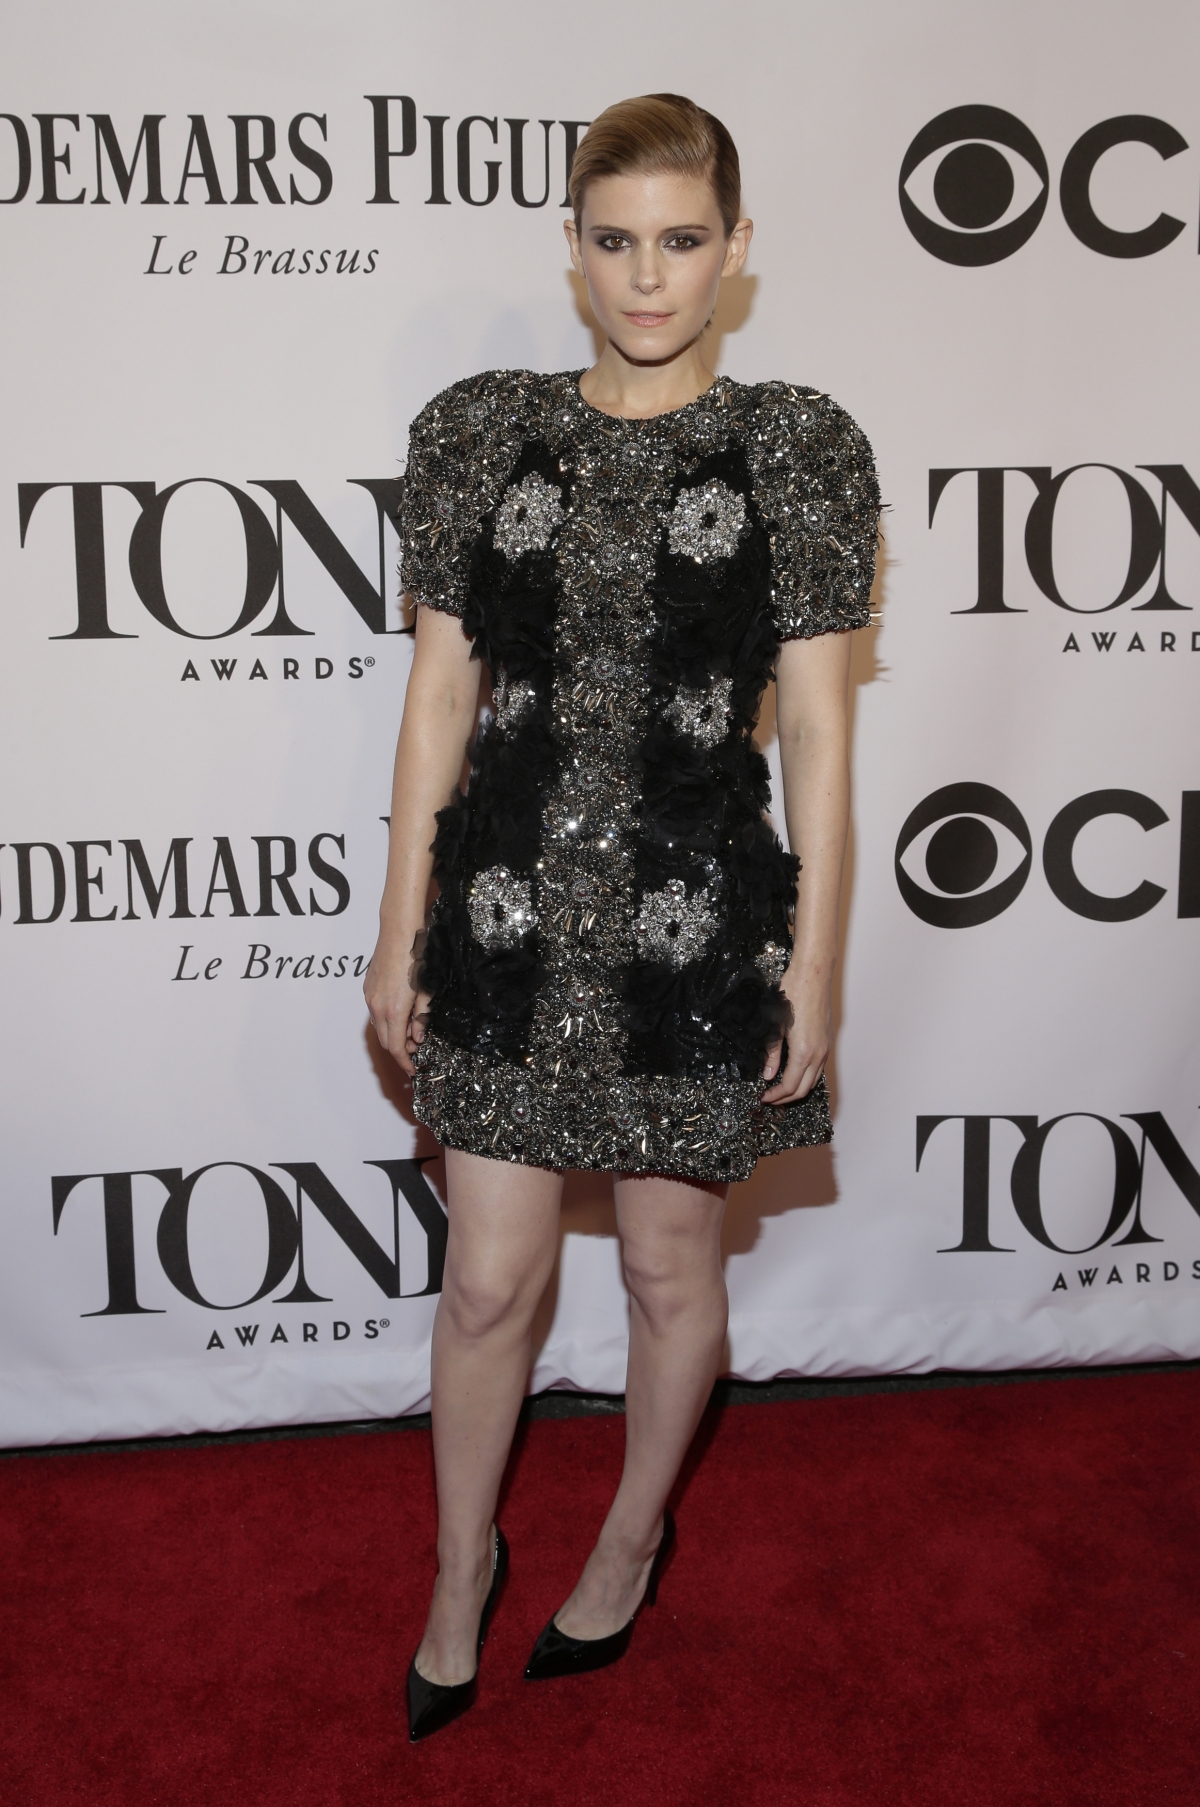 Actress Kate Mara arrives for the American Theatre Wing's 68th annual Tony Awards at Radio City Music Hall in New York, June 8, 2014.